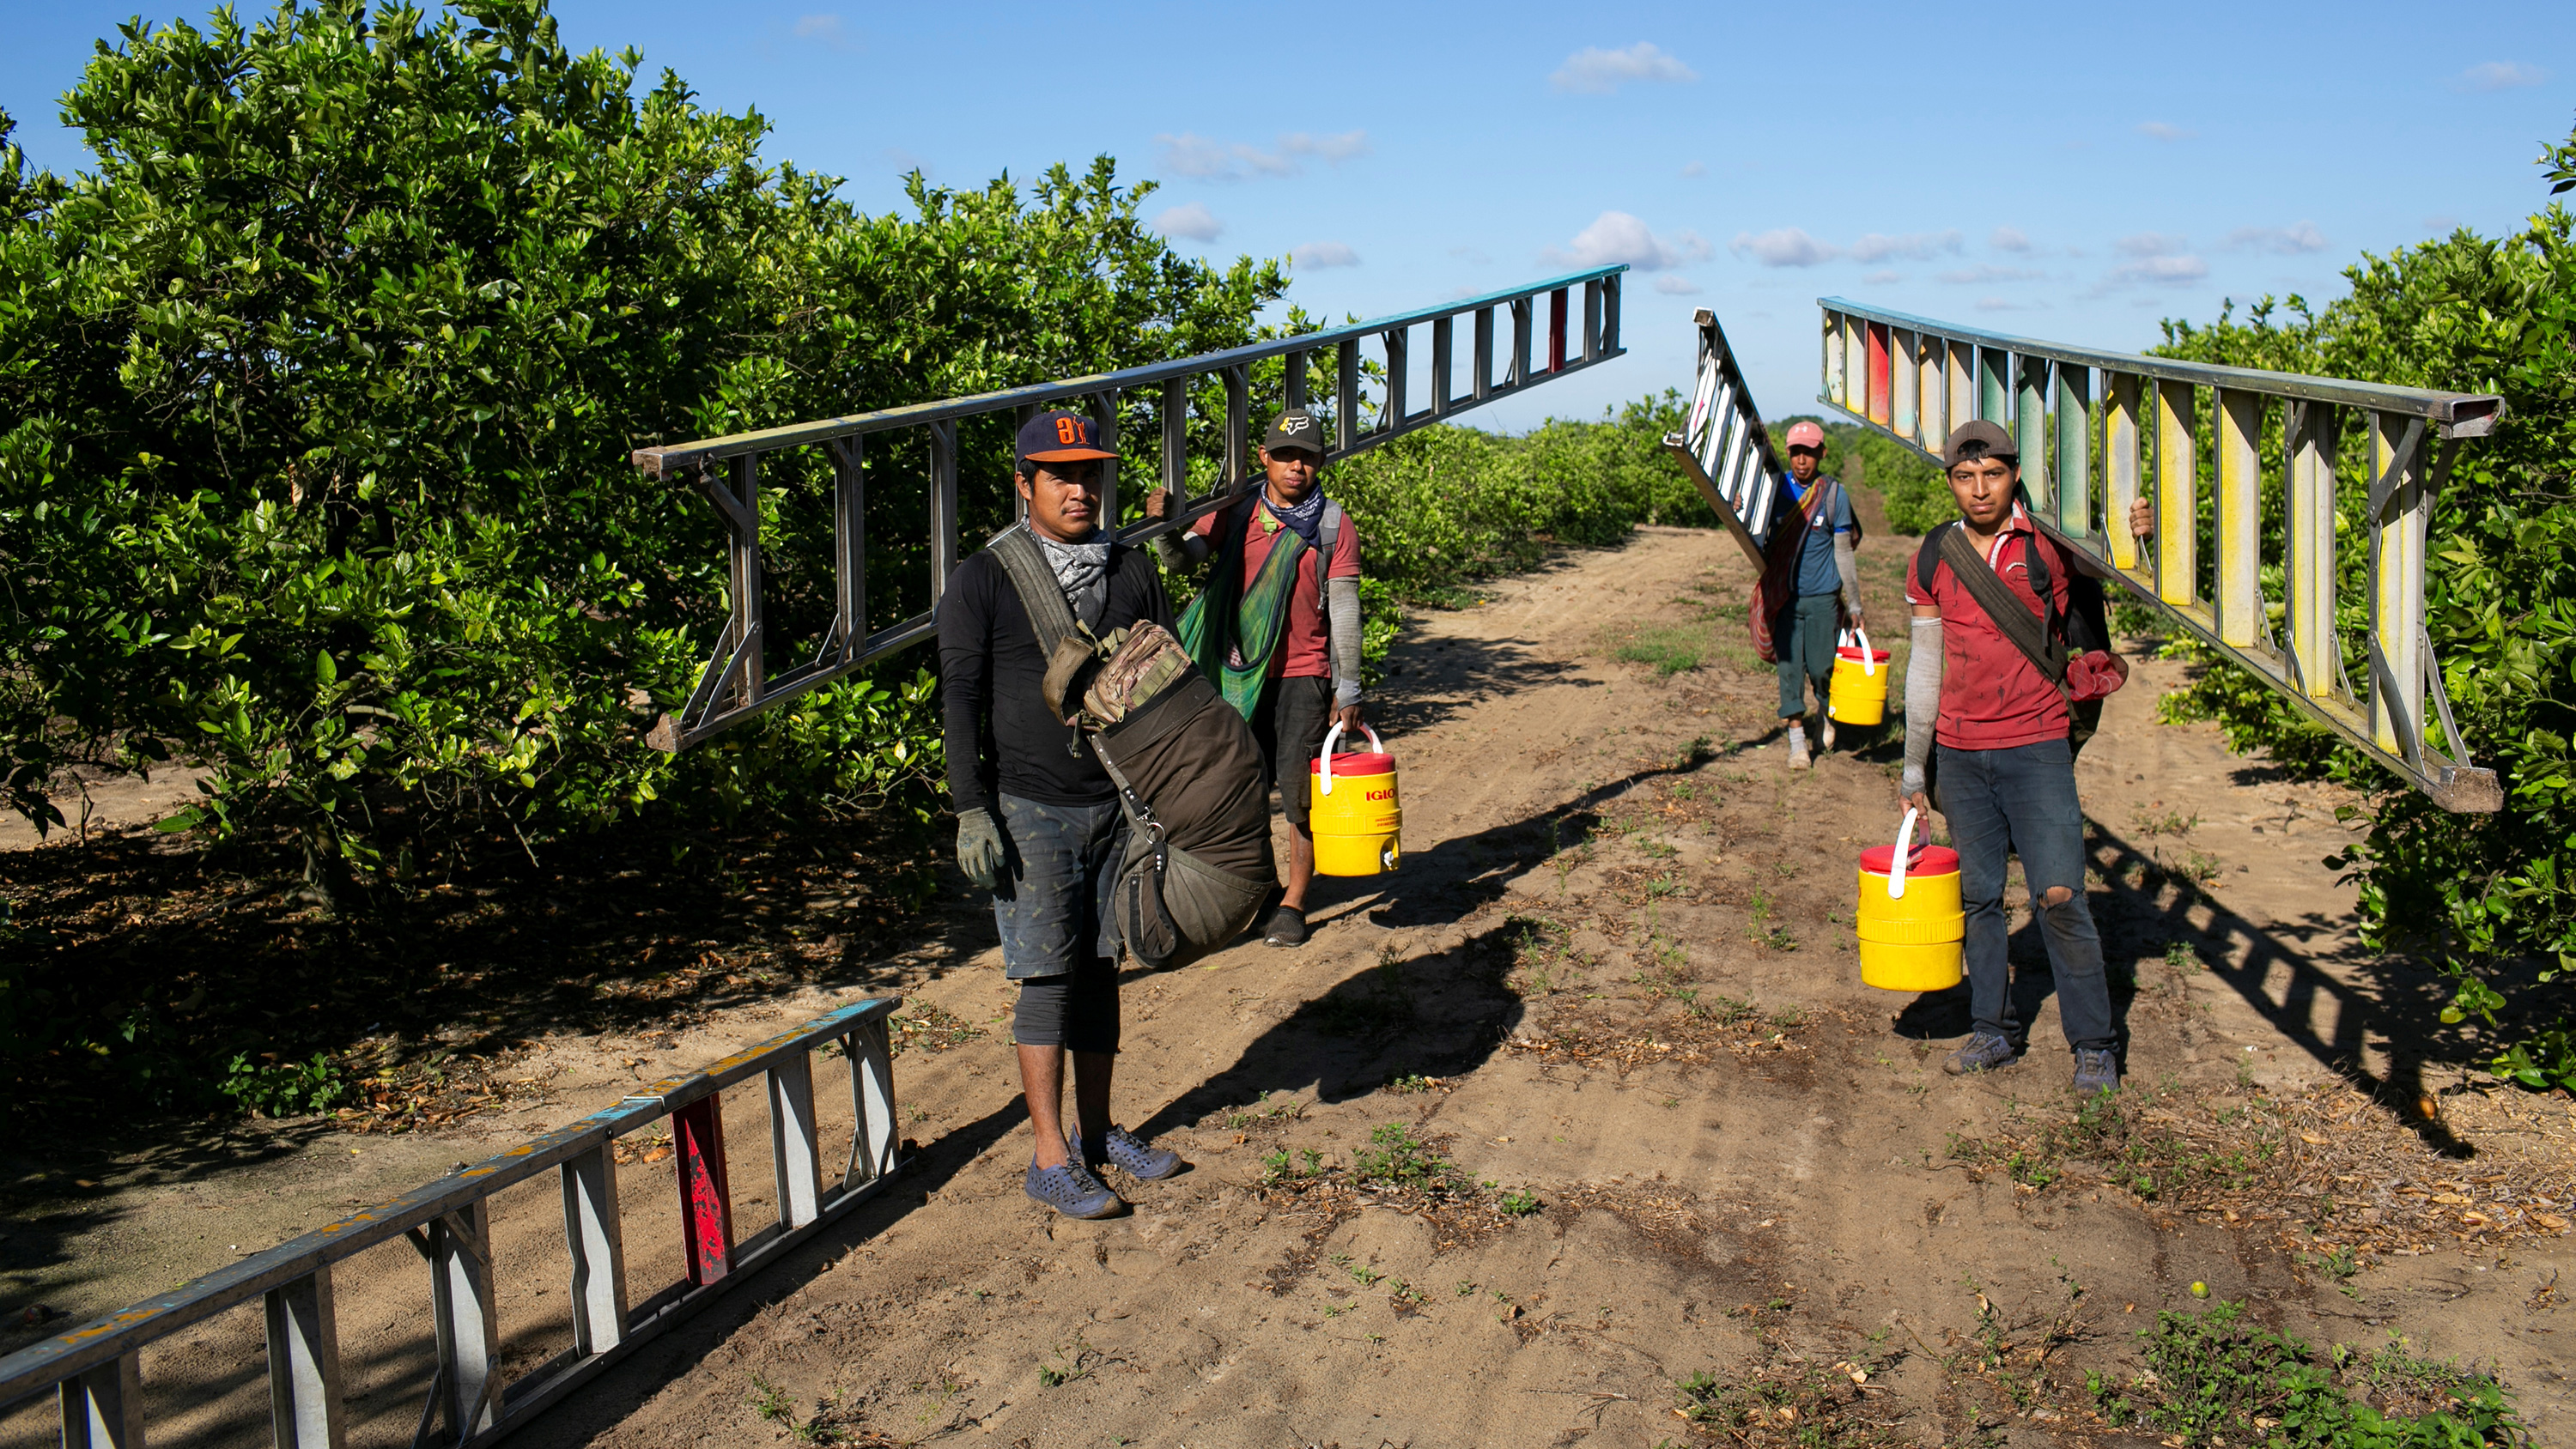 Picture shows several farm workers carrying long ladders among trees in an orange grove.